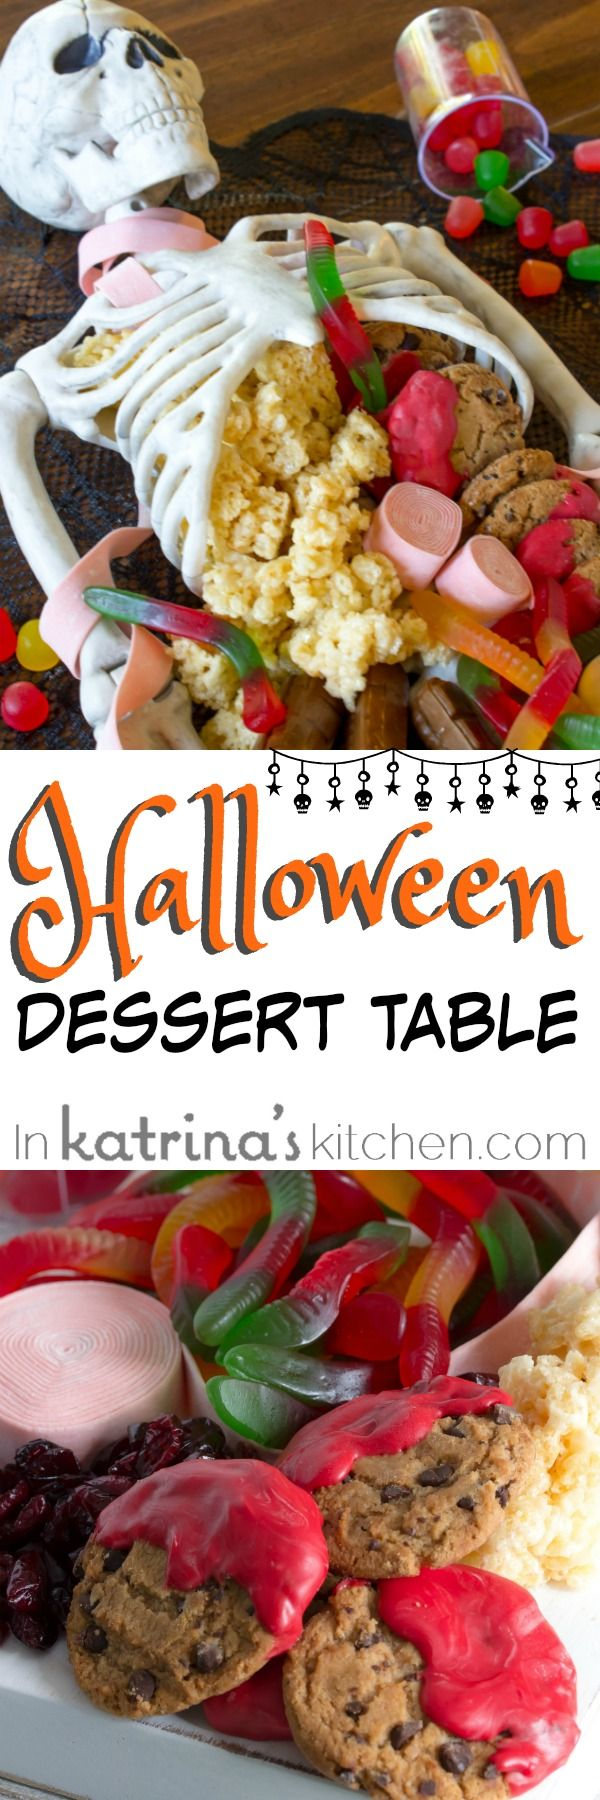 Halloween food table decorations - Everyone Will Love This Halloween Dessert Table Spooky Quick And Easy Halloween Centerpiece